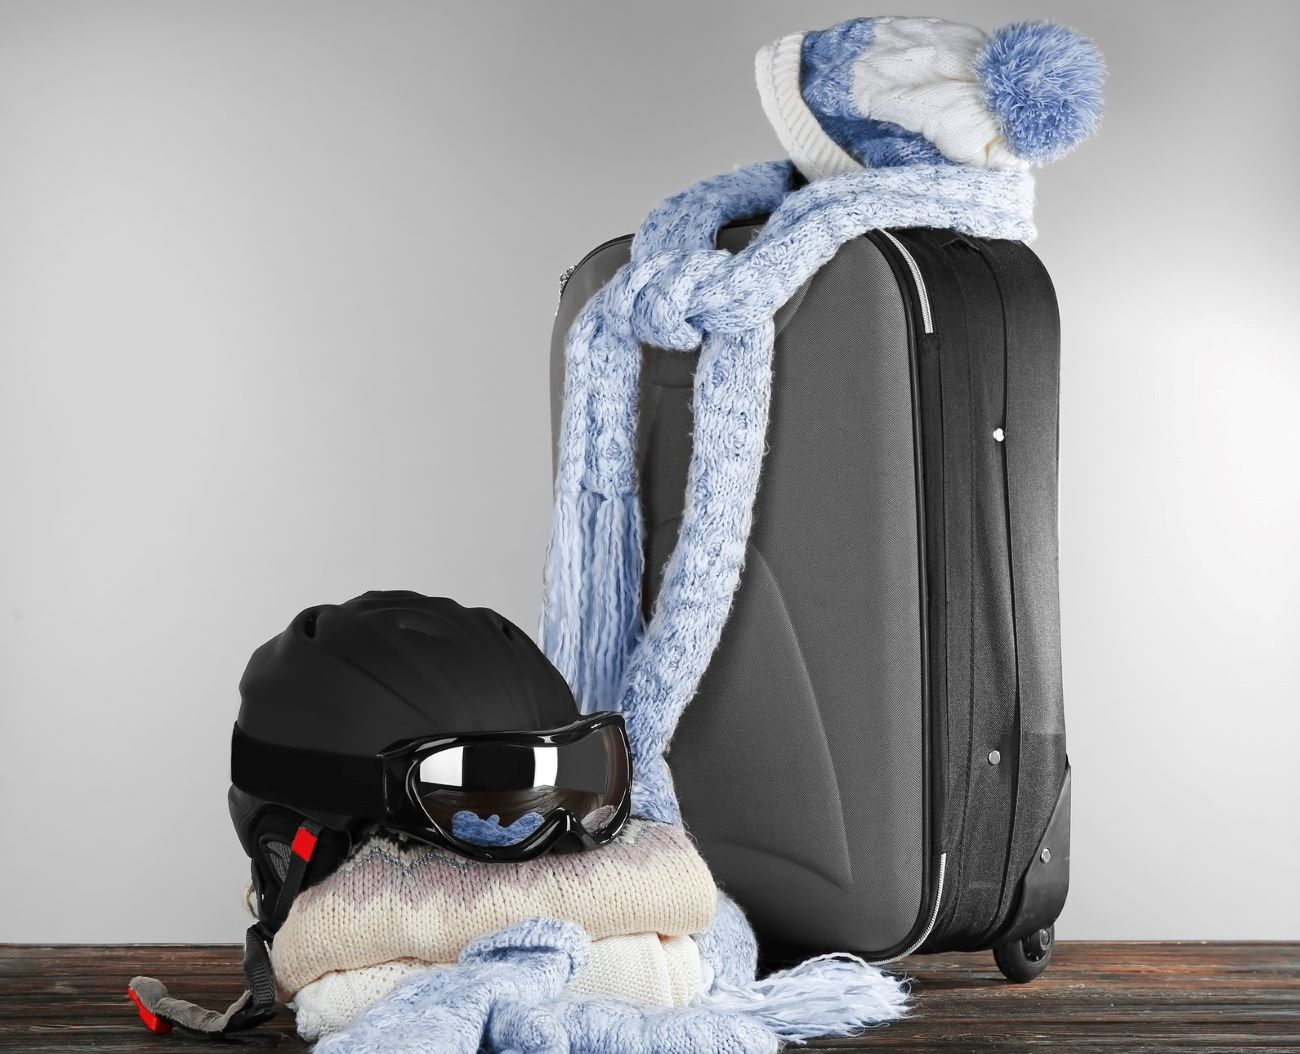 suitcase with helmet and ski clothes piled on top